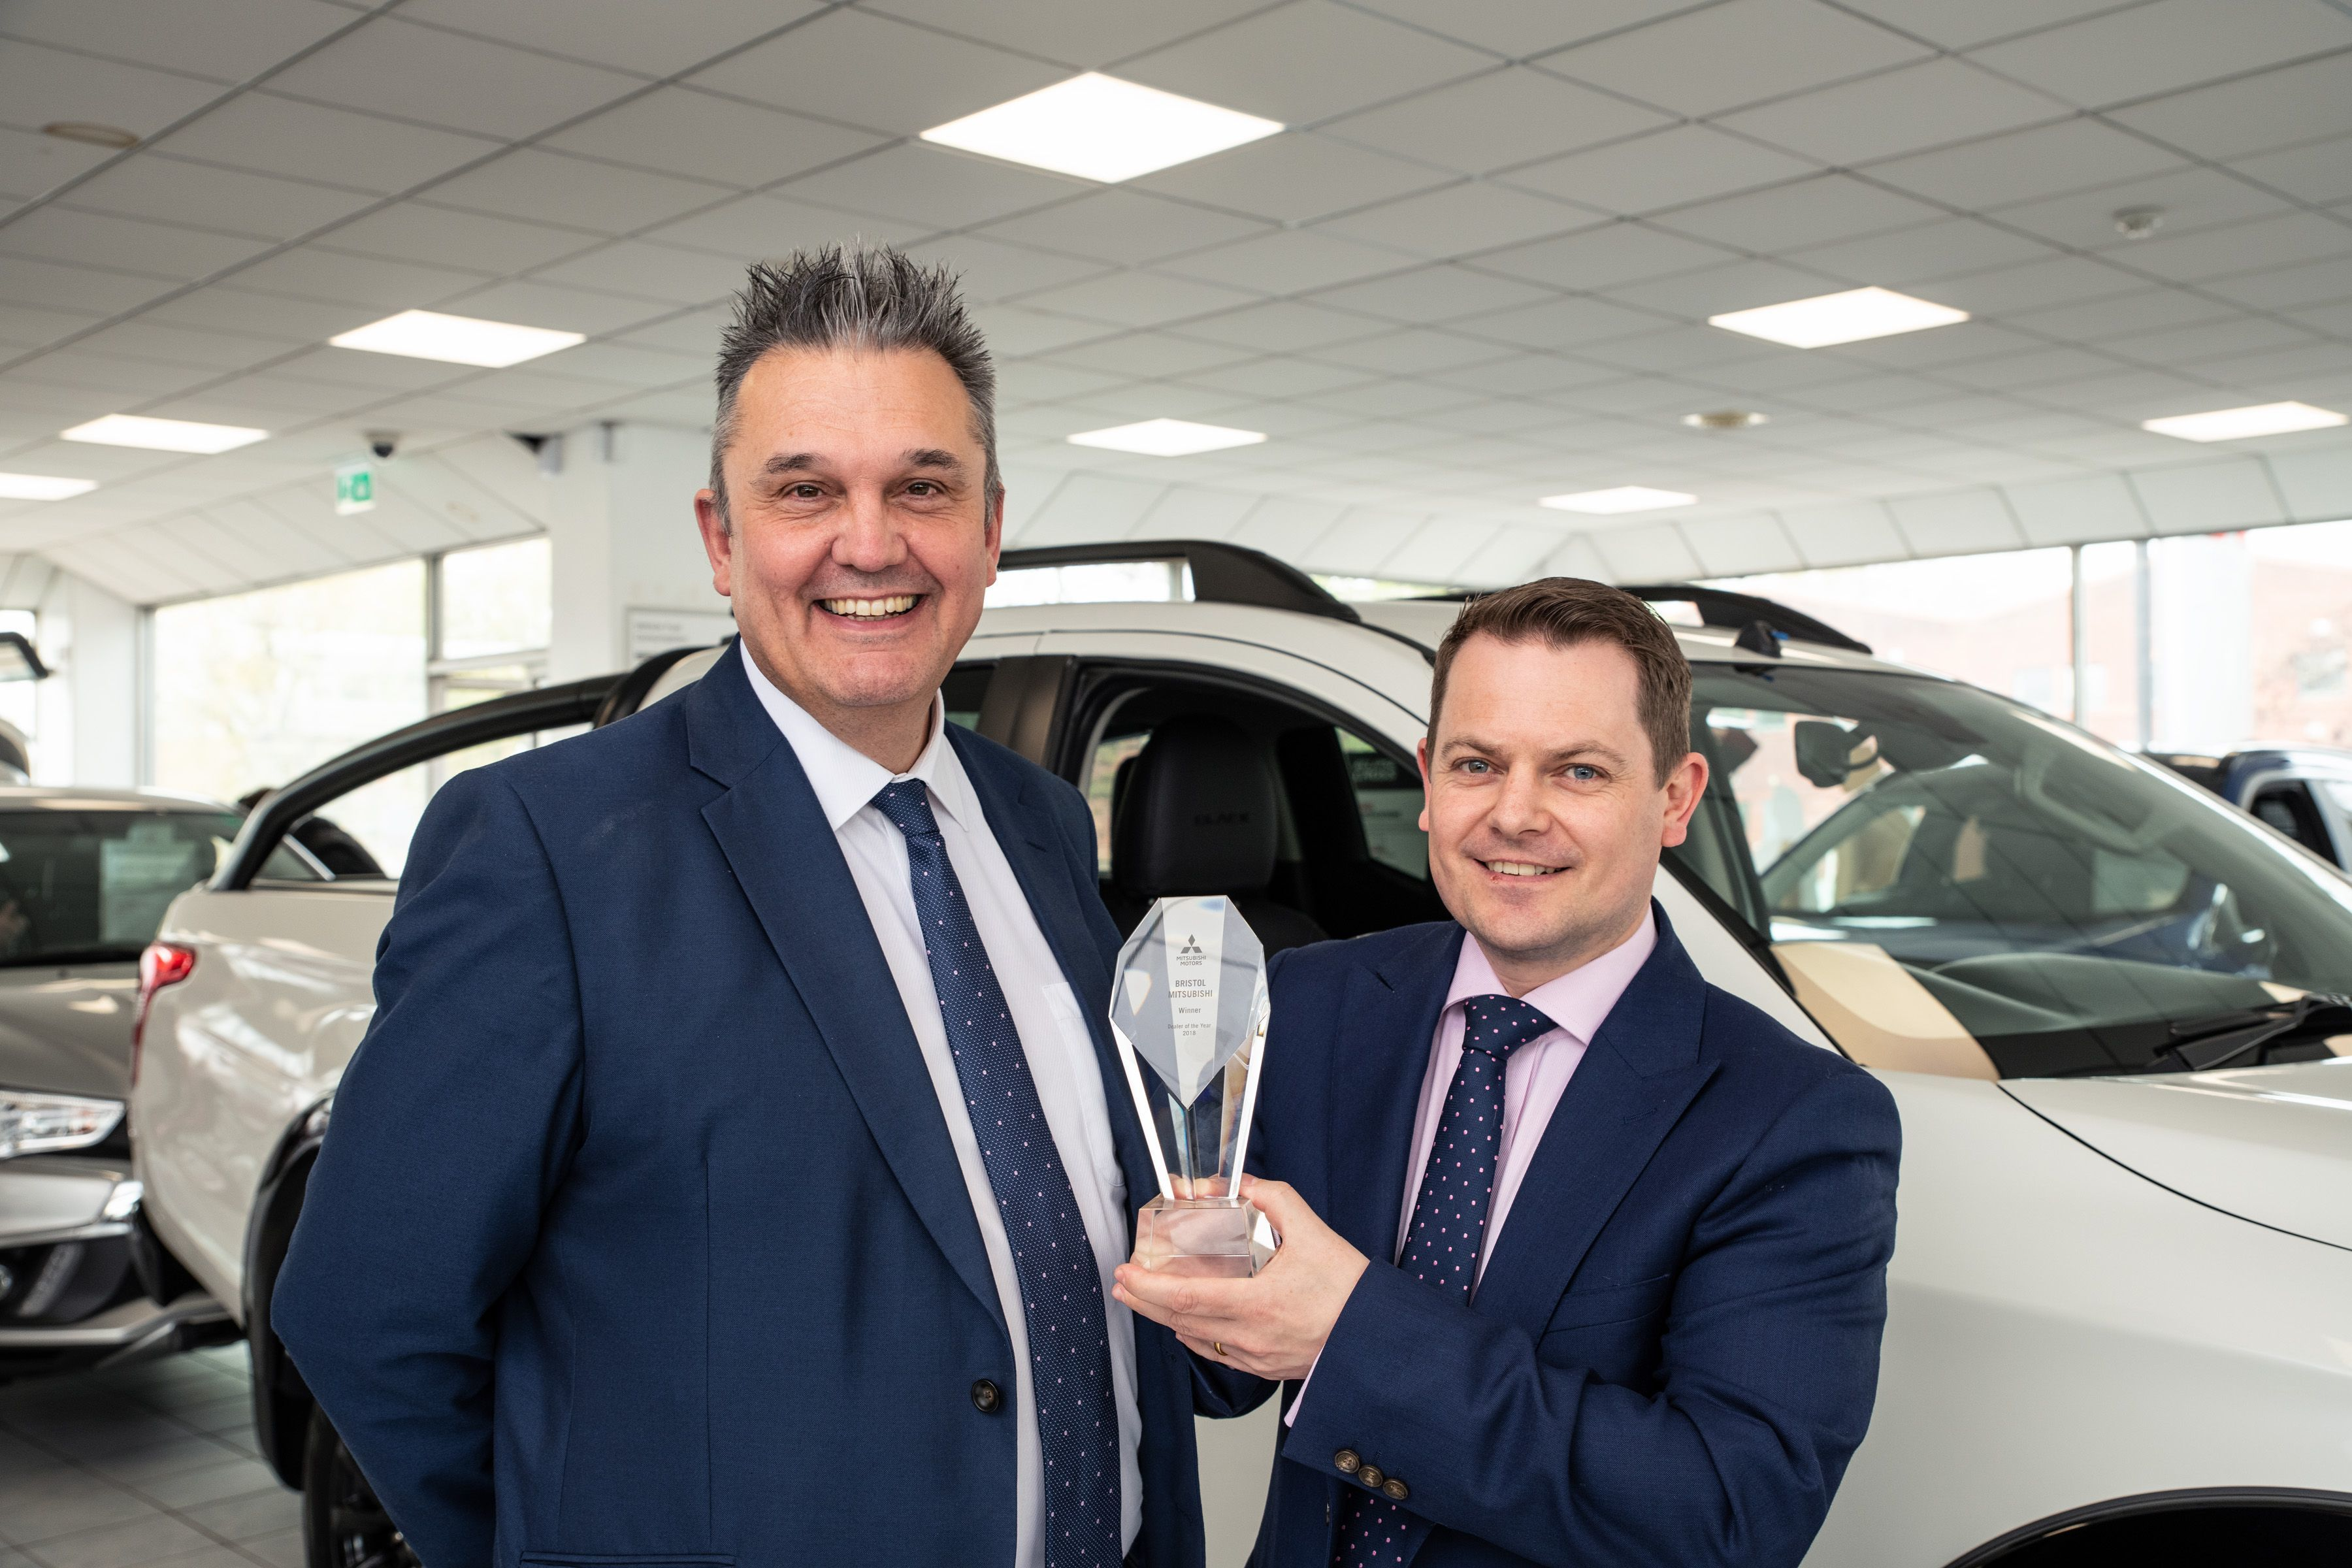 BRISTOL MITSUBISHI NAMED DEALER OF THE YEAR BY MITSUBISHI MOTORS IN THE UK